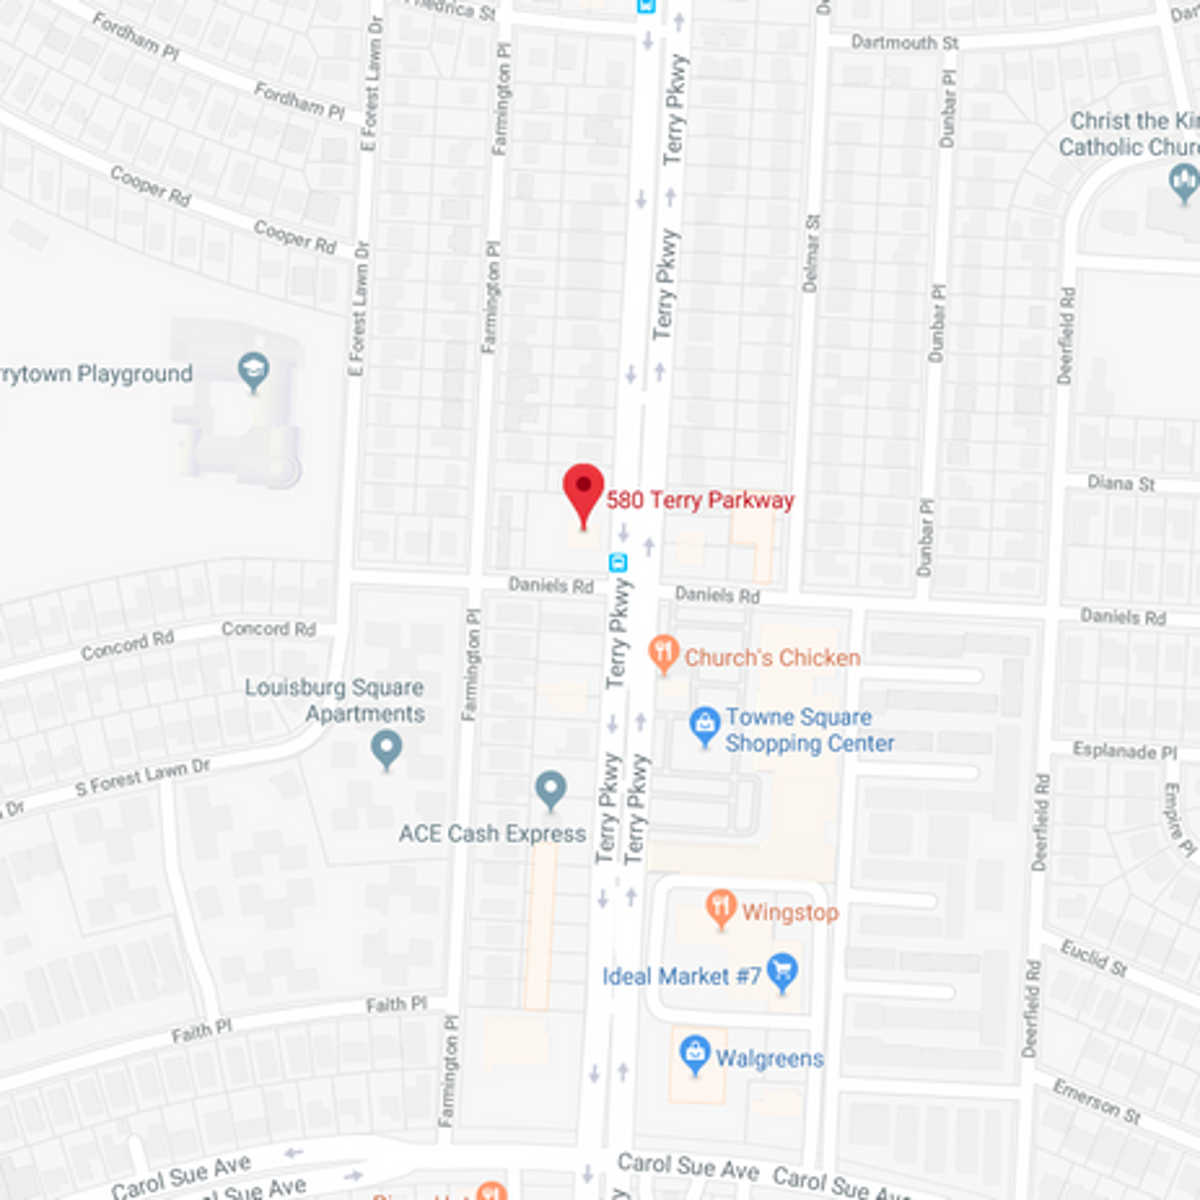 3 robbed at gunpoint in Terrytown: JPSO | Crime/Police ... on transportation center, book center, water center,